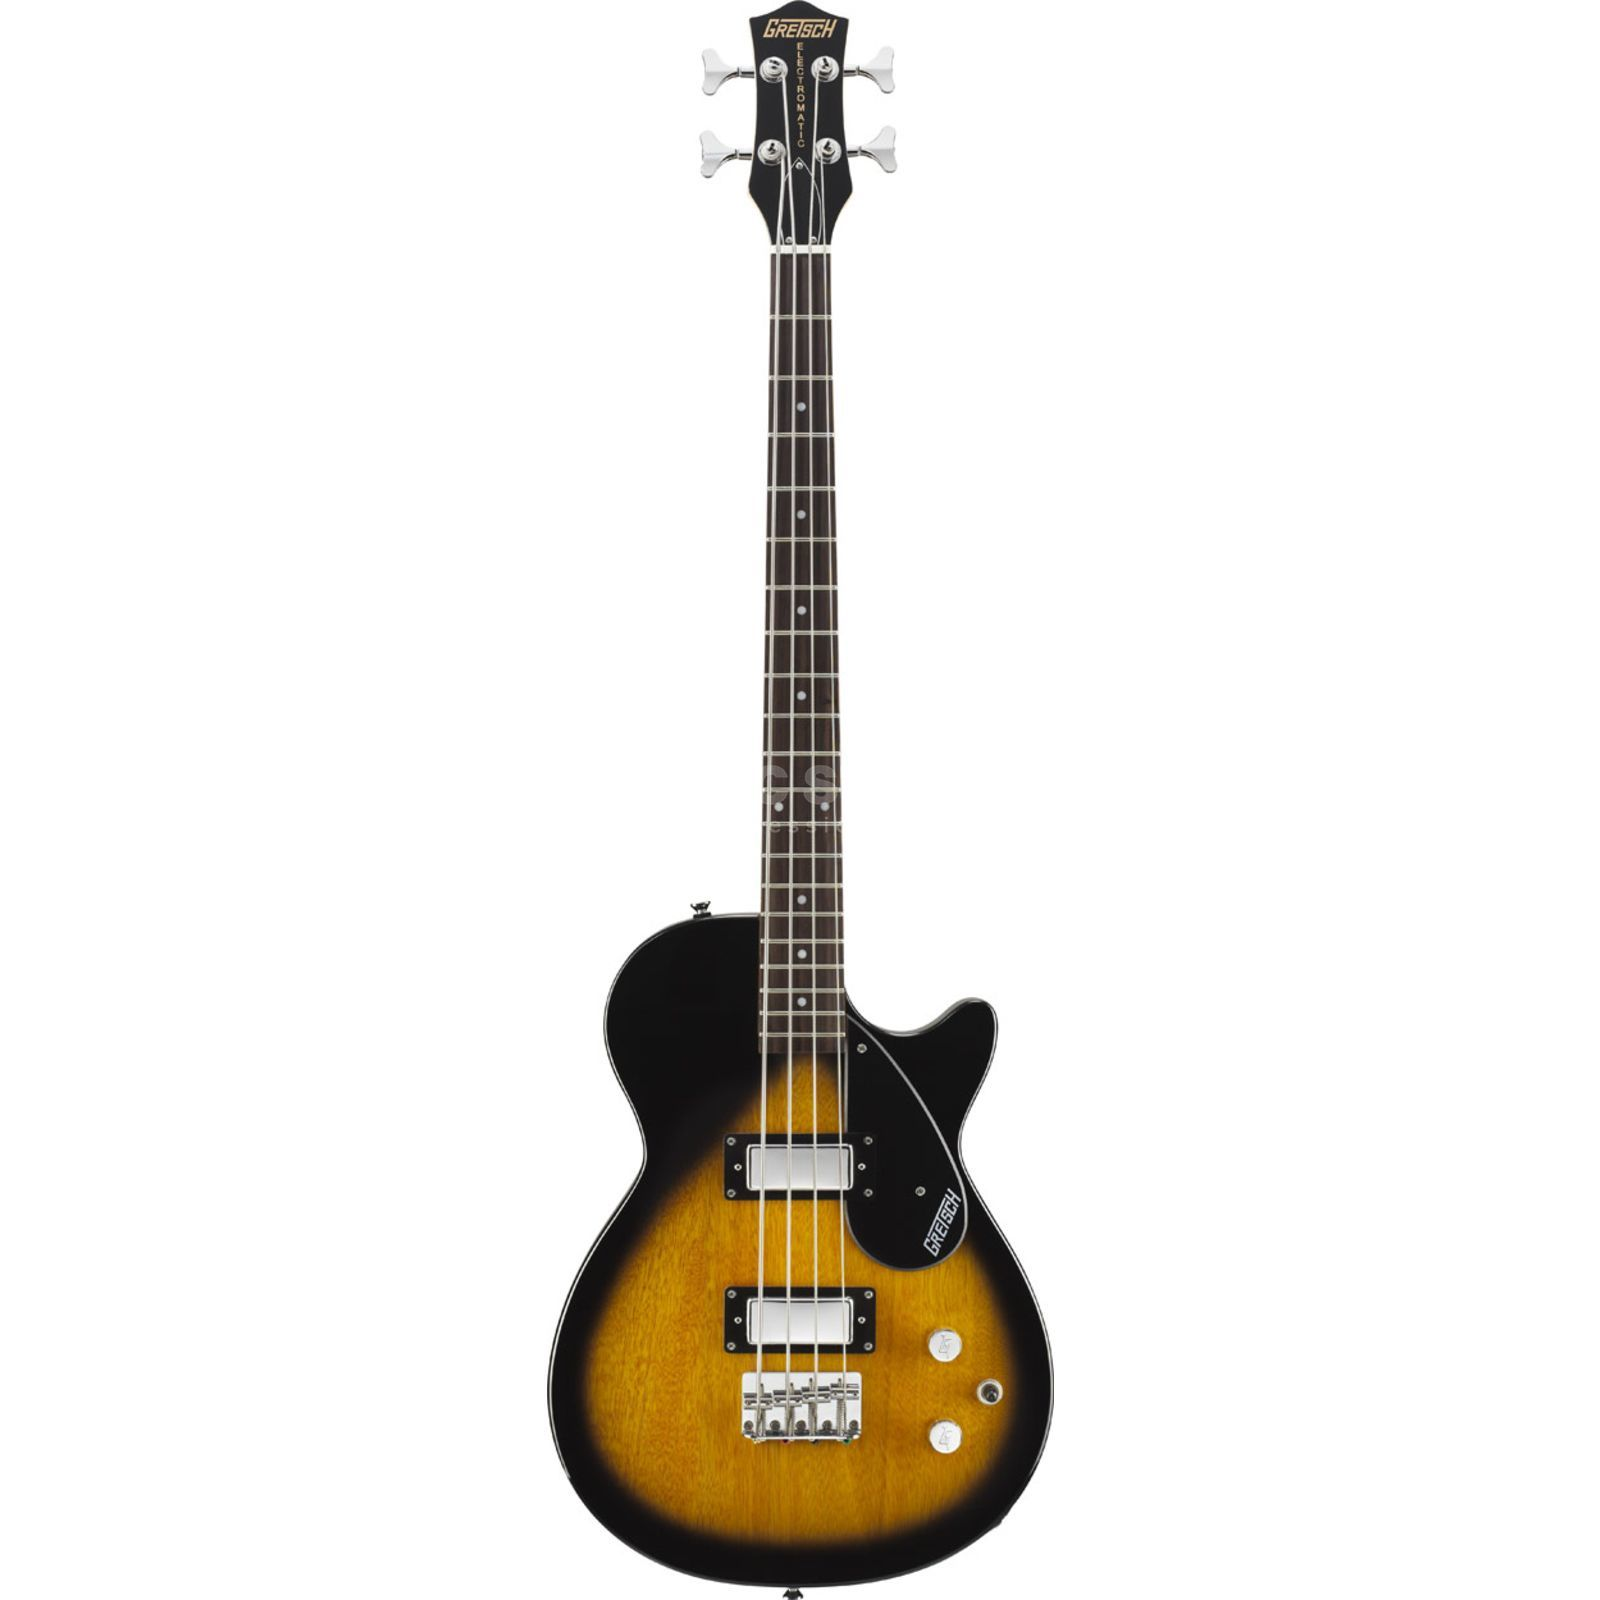 Gretsch G2220 Junior Jet II Bass Guita r, Tobacco Sunburst   Изображение товара